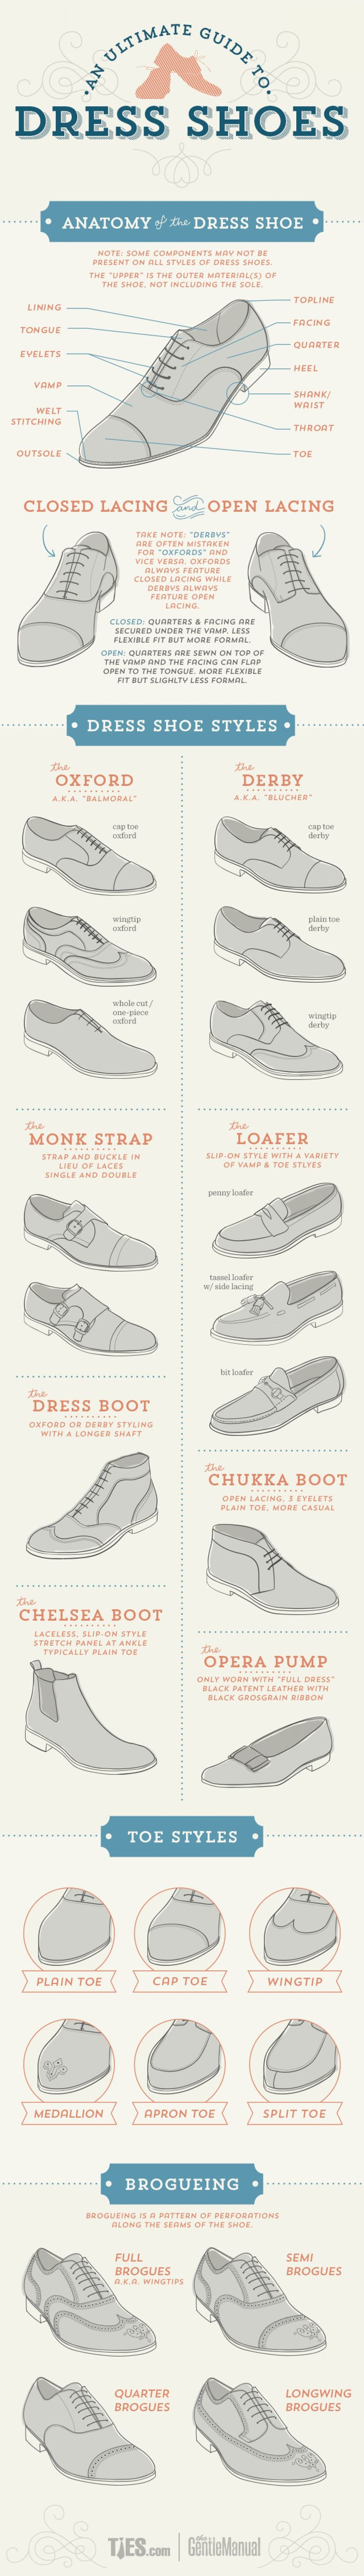 365 best education images on pinterest fashion illustrations everything you need to know when it comes to mens dress shoe type and style with malvernweather Gallery